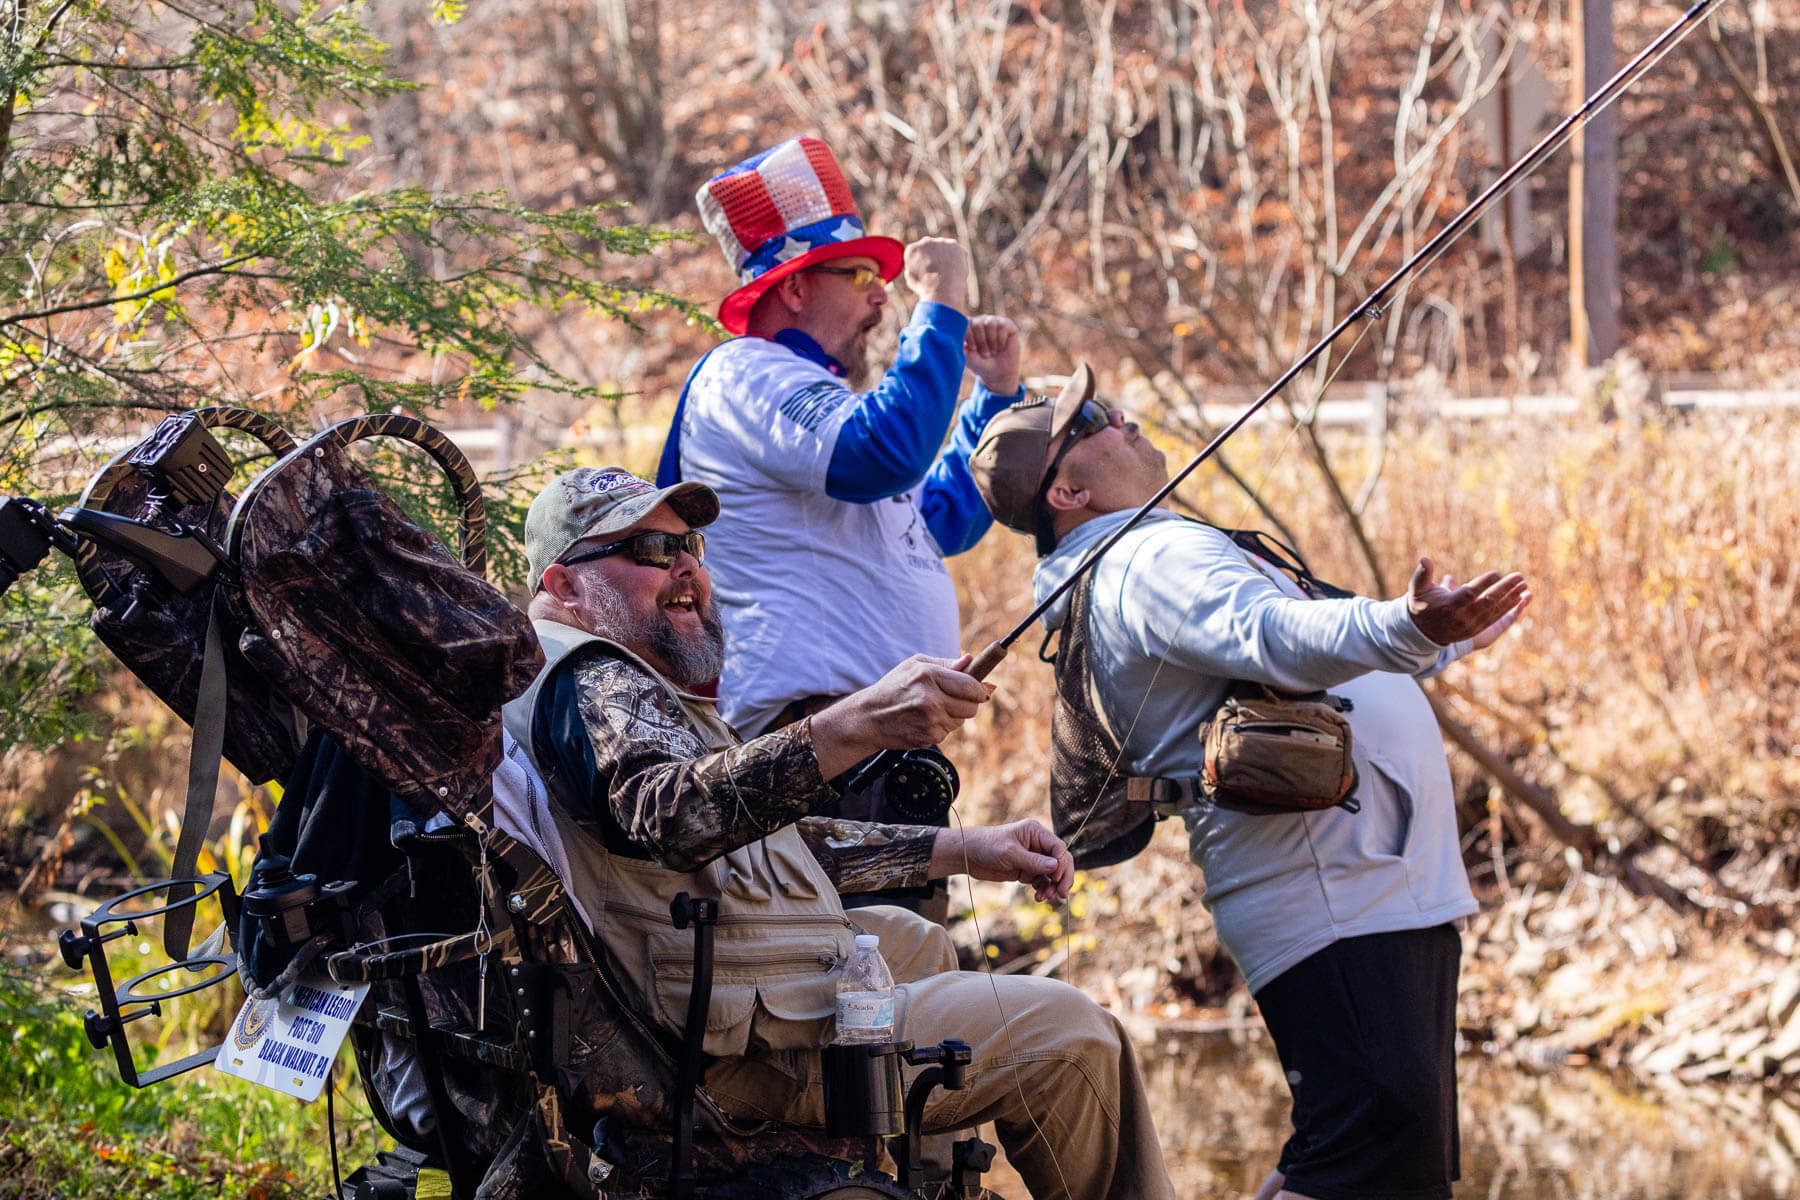 From left, Jason Wenton narrowly misses catching a fish with mentors Carl Stokes and Ardill Keeler.